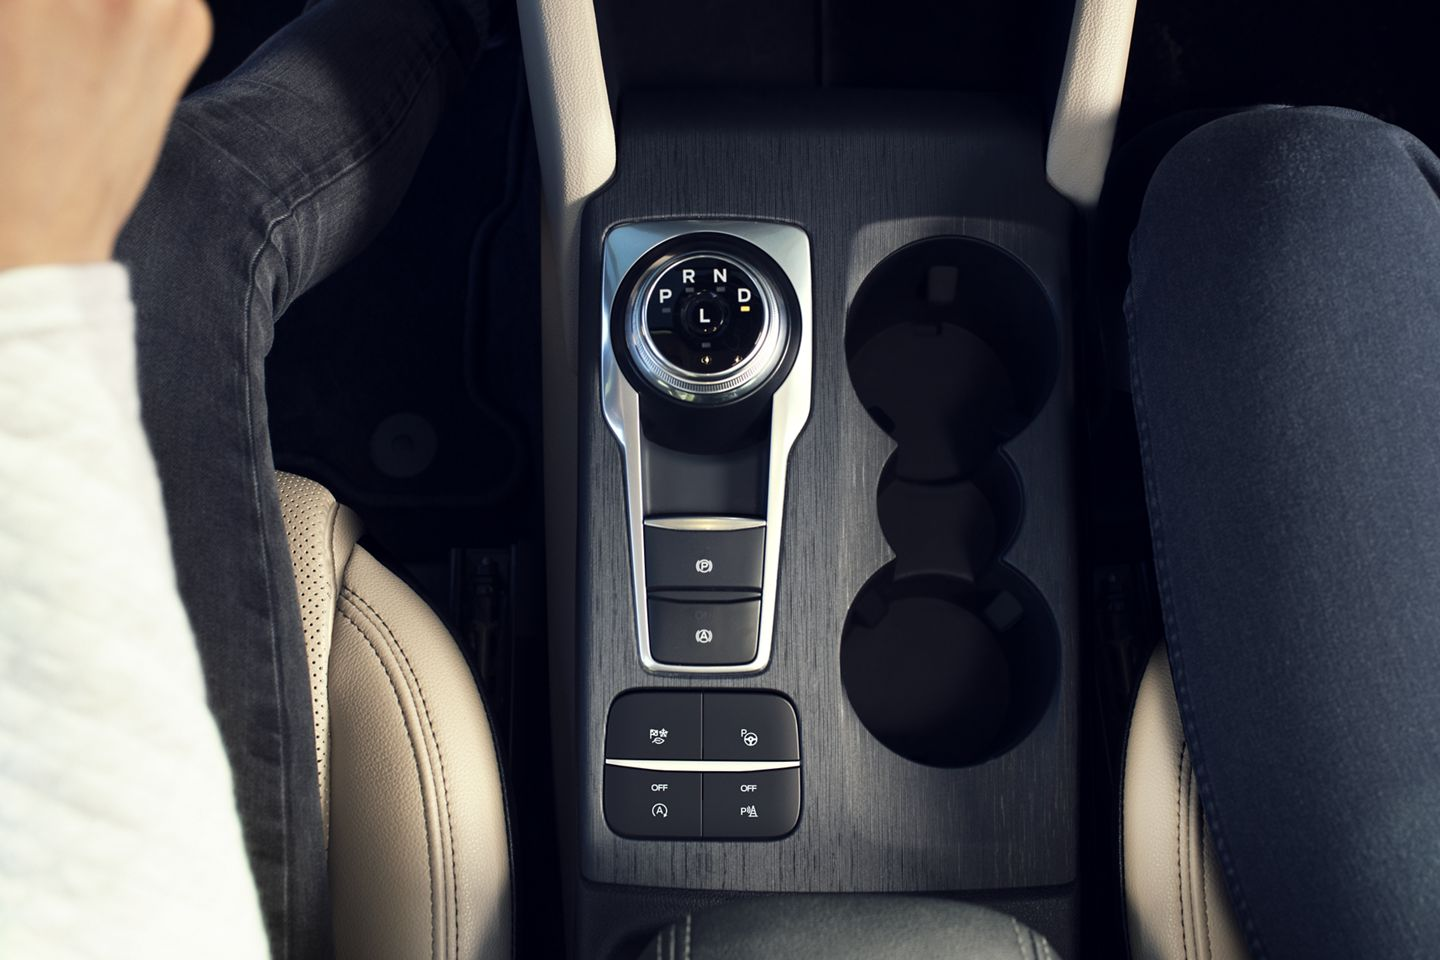 2020 Ford Escape Interior Rotary Gear Shift Detail Picture.jfif